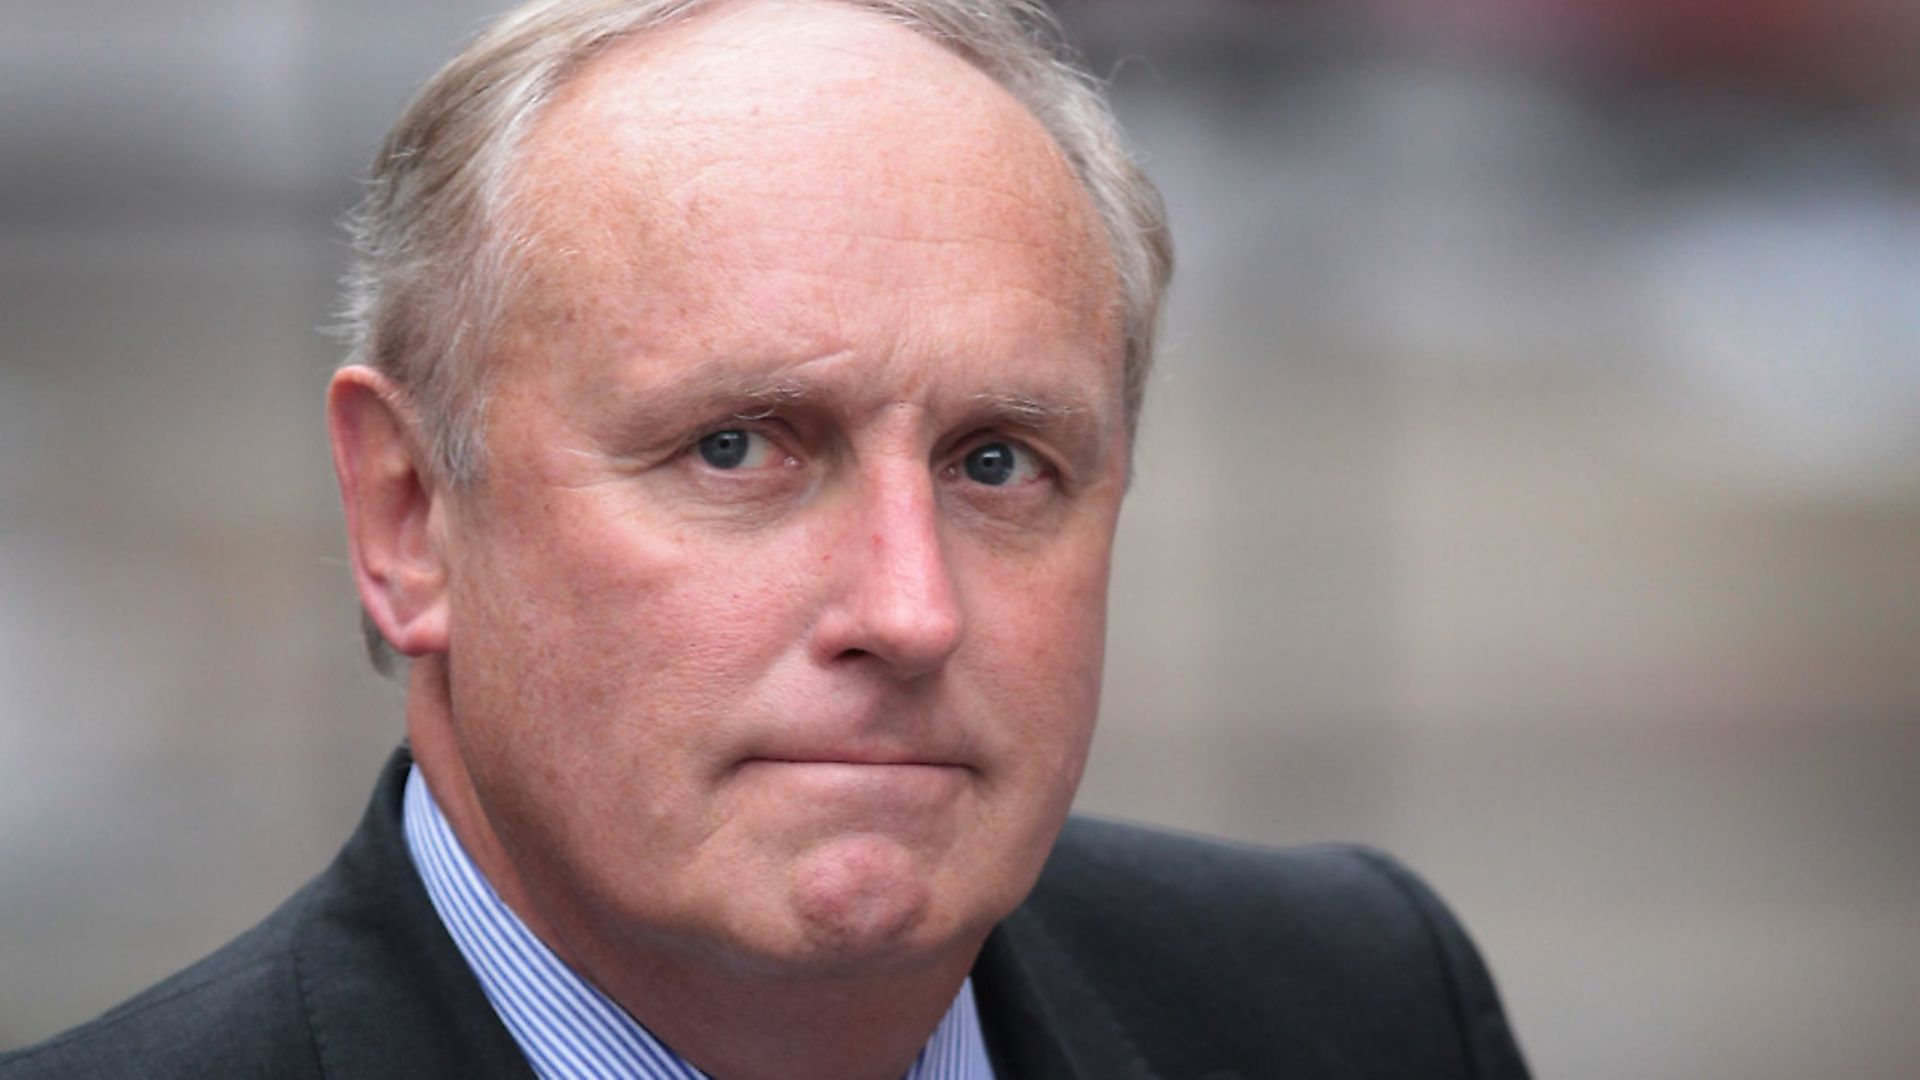 Paul Dacre, editor of The Daily Mail, Photo by Peter Macdiarmid/Getty Images - Credit: Getty Images